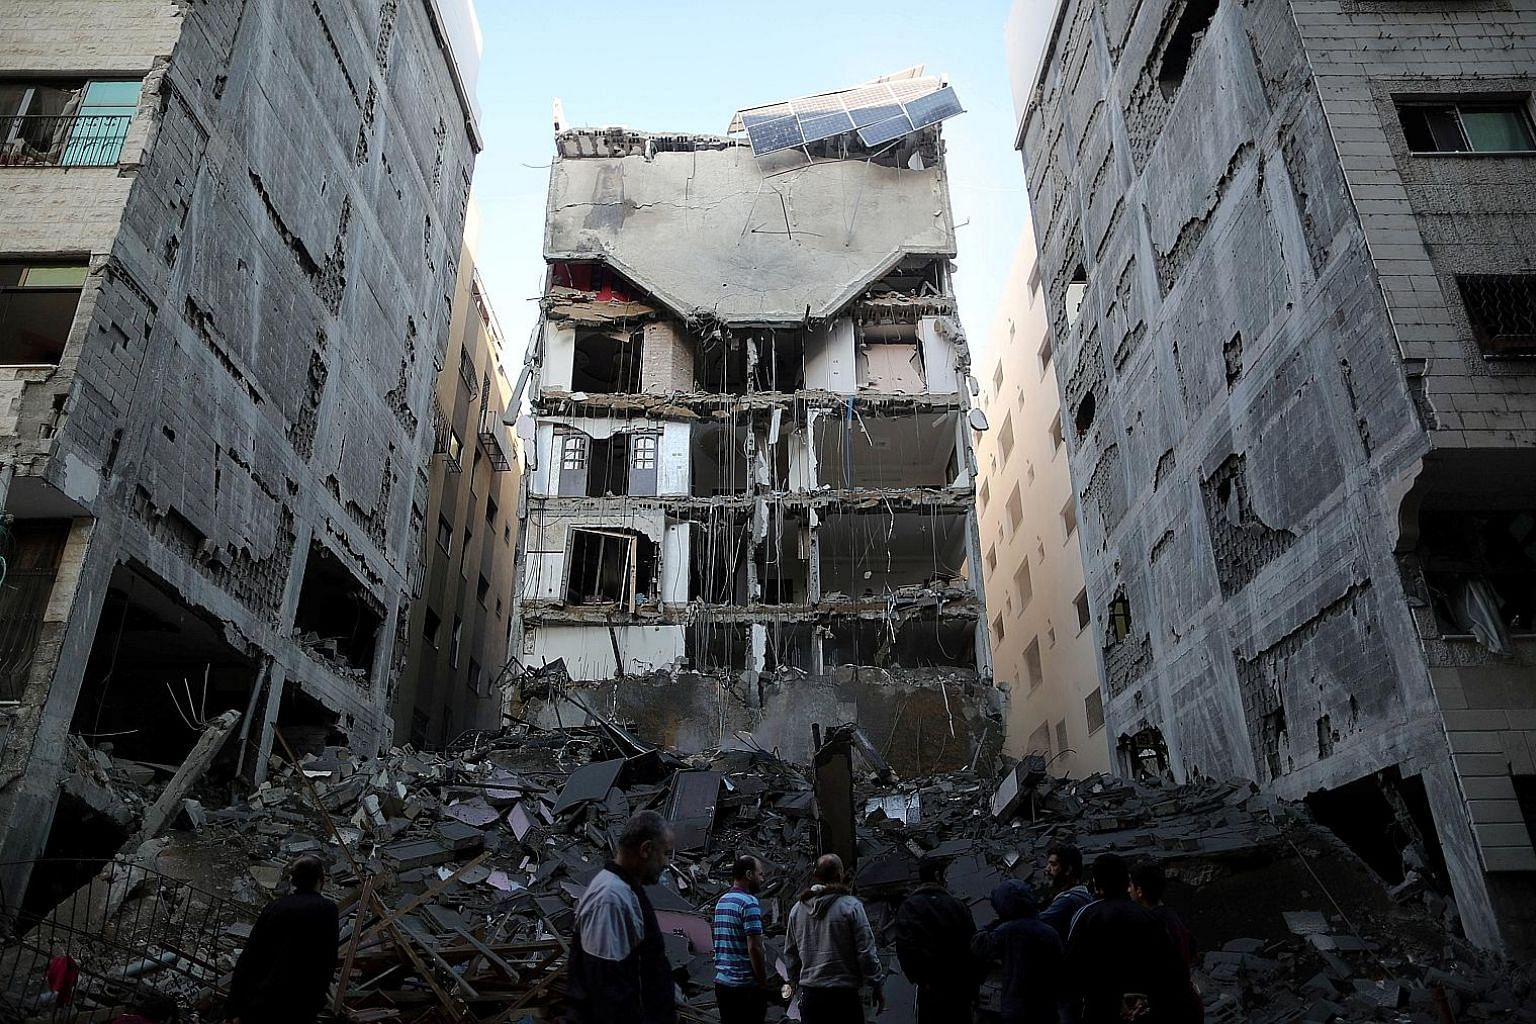 Palestinians gathering near the remains of a building that was completely destroyed by an Israeli air strike in Gaza. The fighting began after Israeli intelligence operatives inside the Gaza Strip were challenged by Hamas fighters.